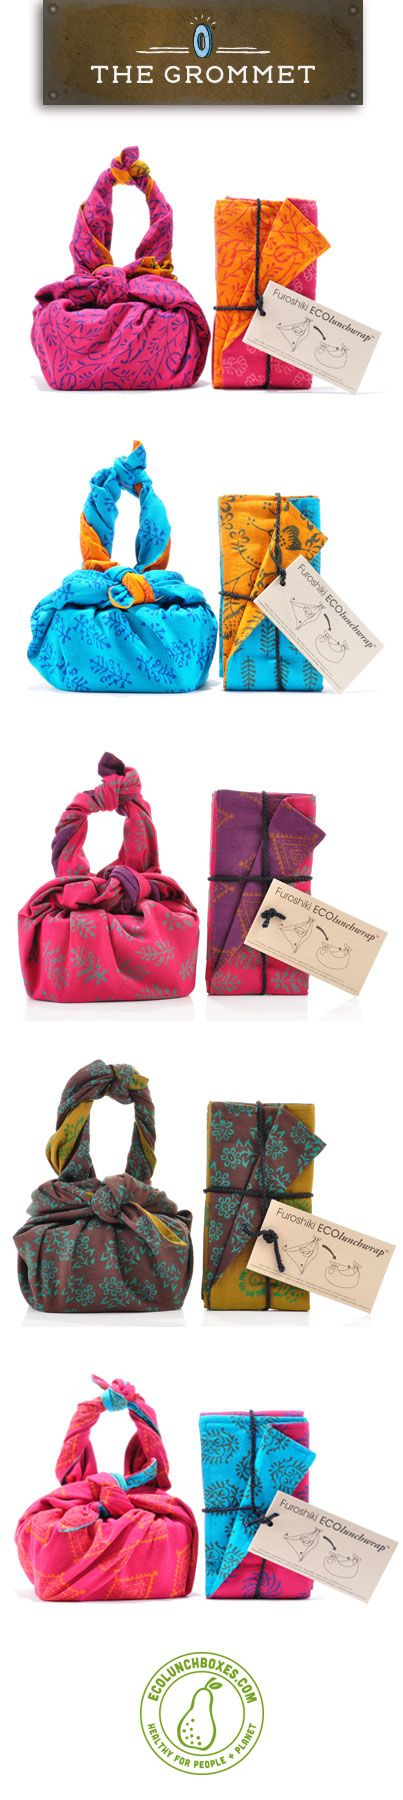 We'e on @The Grommet ! Check out our Furoshiki ECOlunchwraps now available on their site! http://www.thegrommet.com/furoshiki-lunch-wraps-by-eco-lunchbox